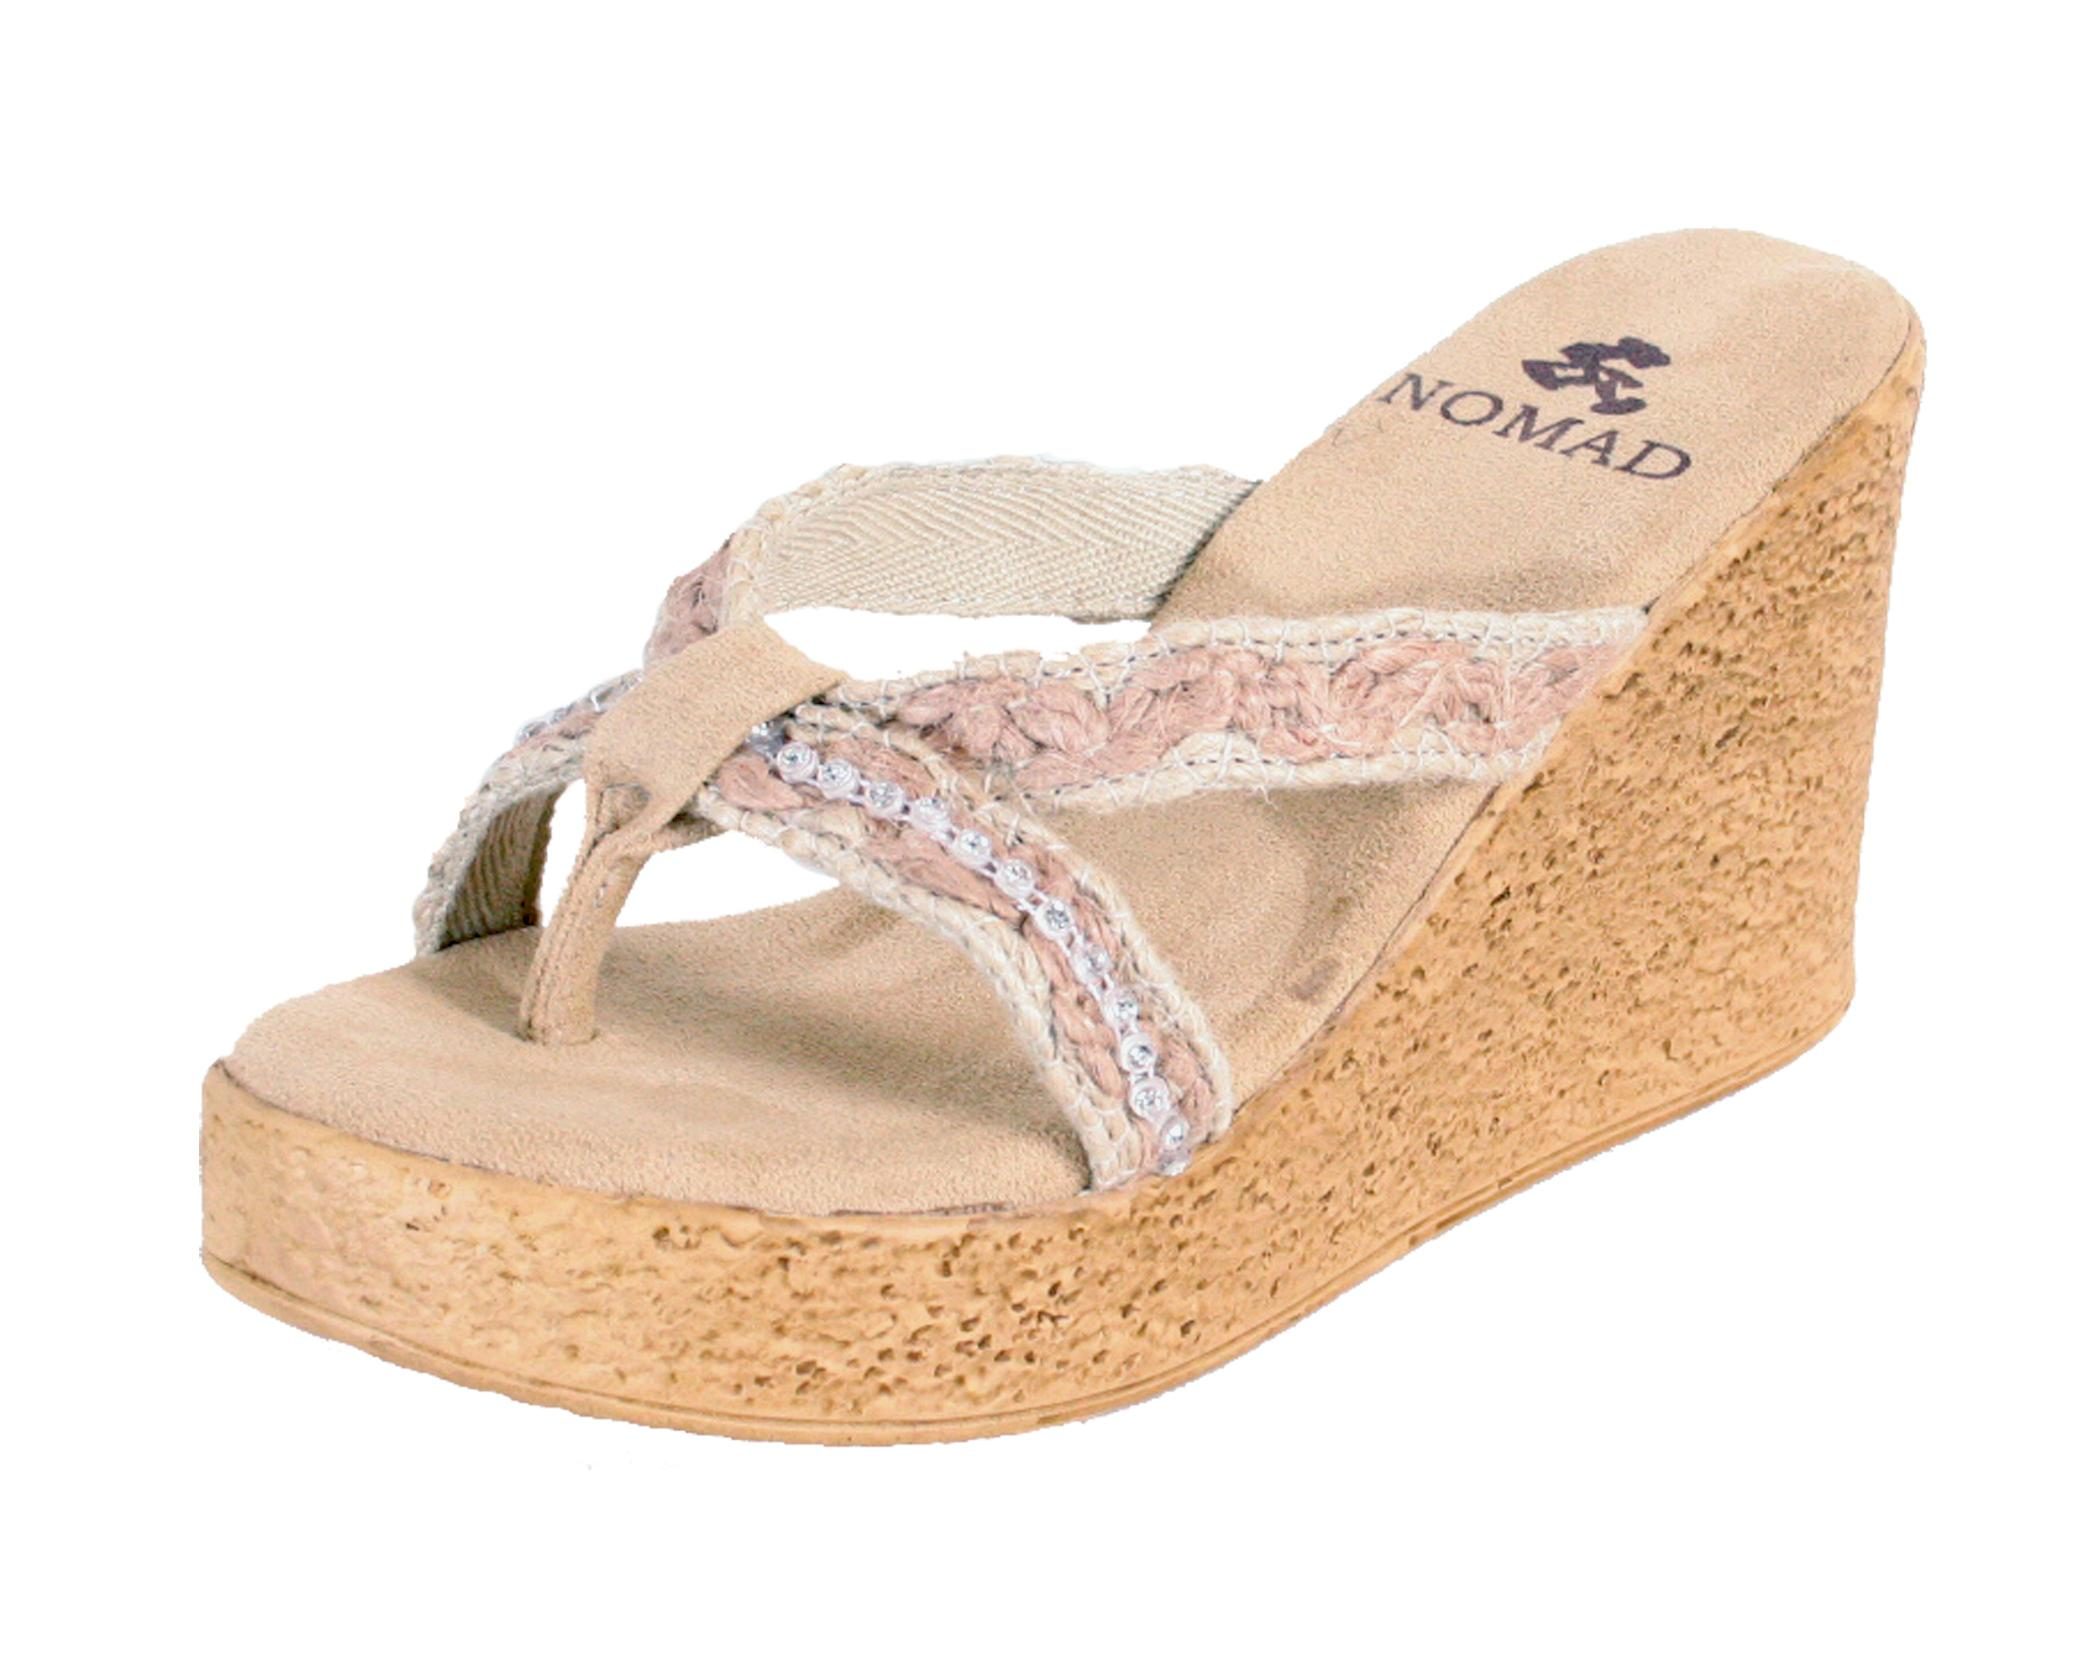 Nomad Laguna Women's Wedge by Nomad